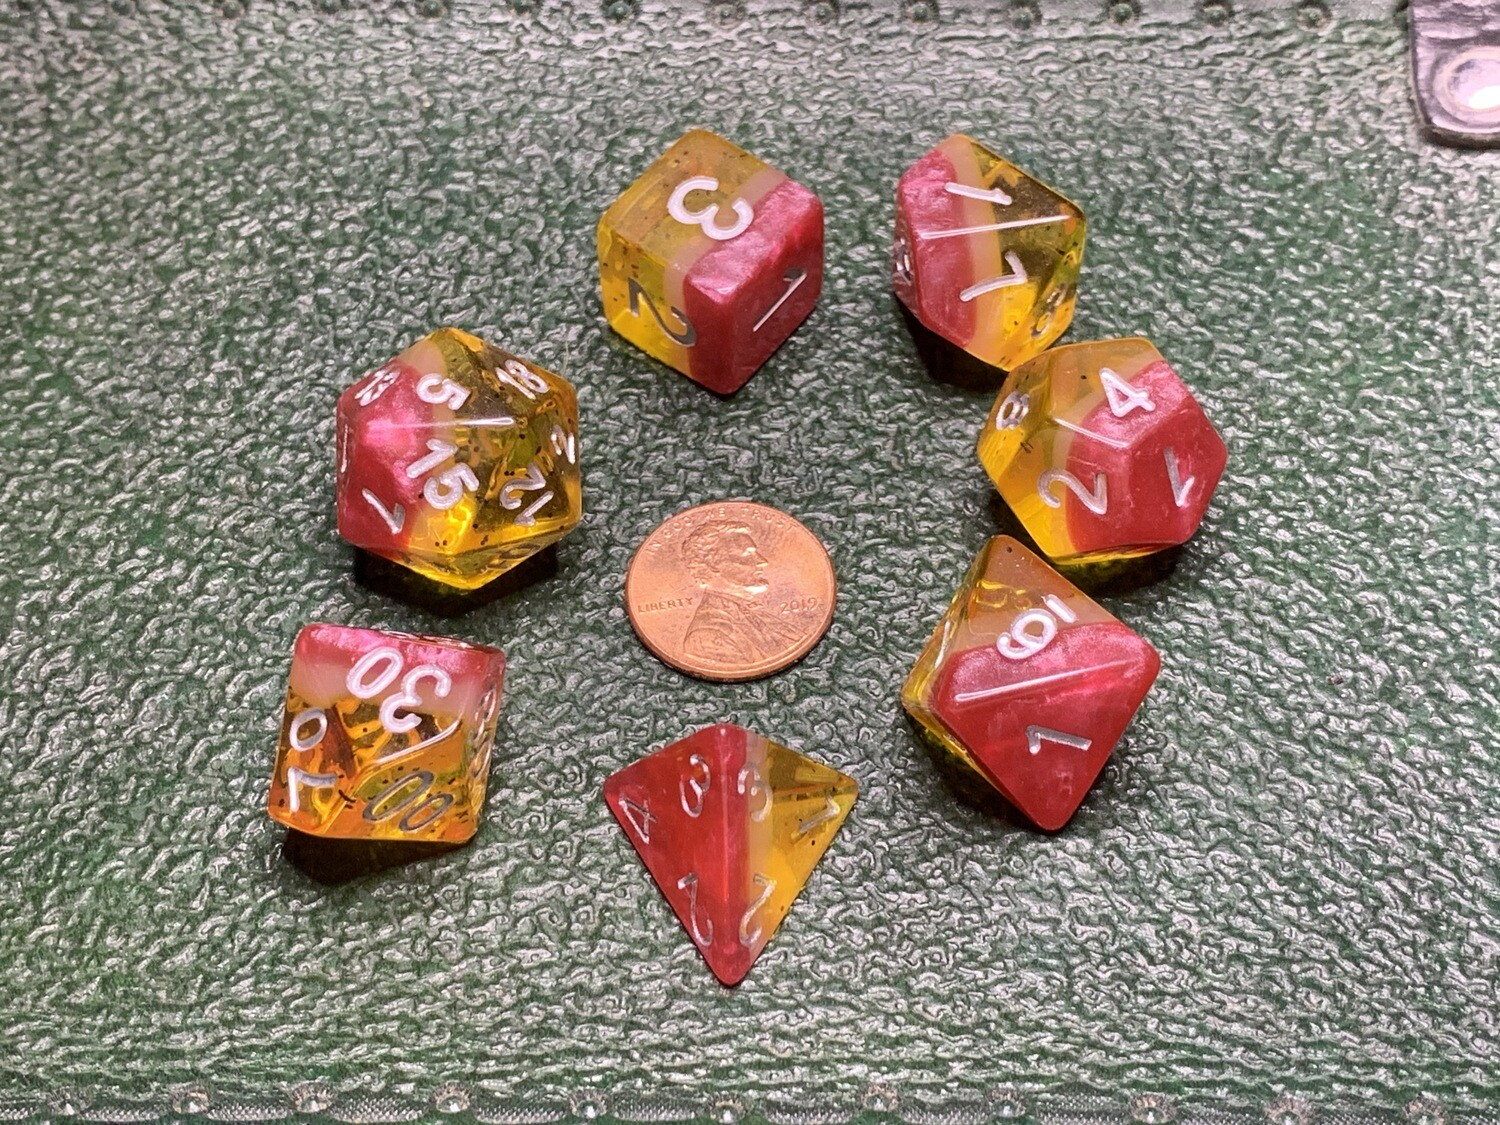 Yellow Rose 7 Piece Dice Polyhedral Set Tabletop RPG Gaming Board Card Games